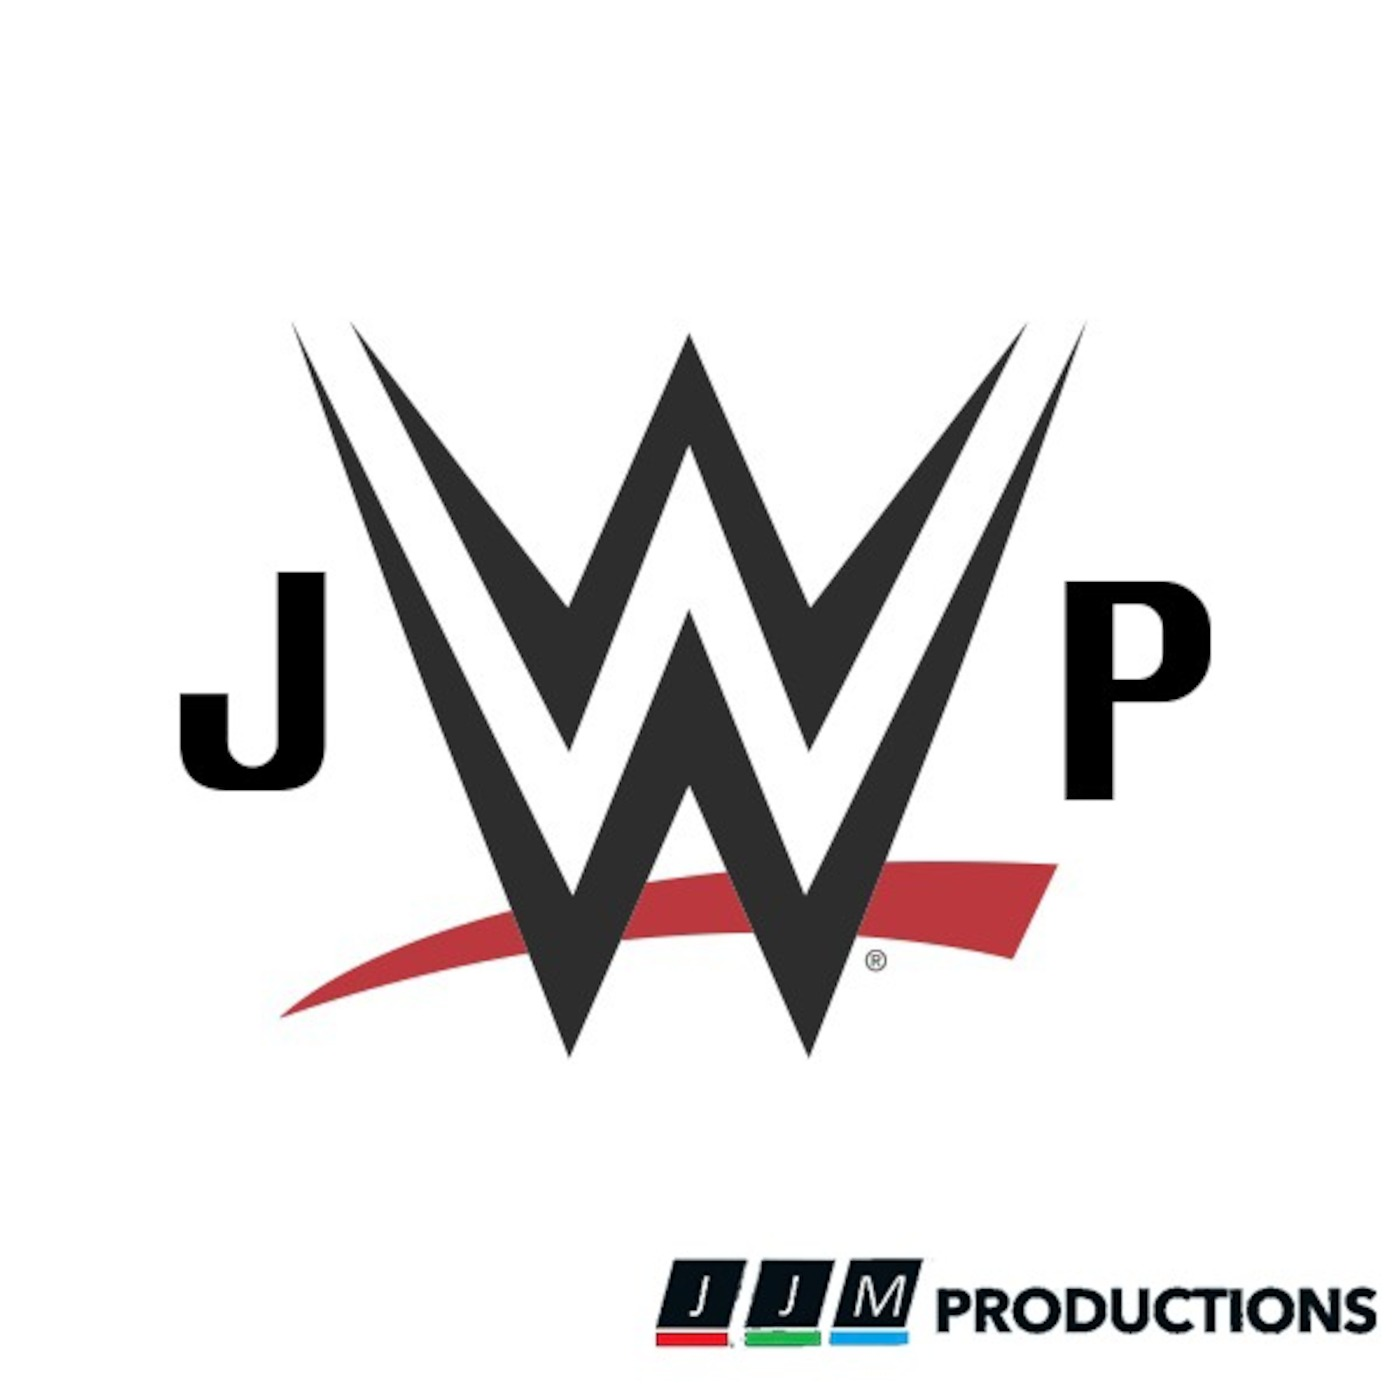 JWP (The Josh Wrestling Podcast)